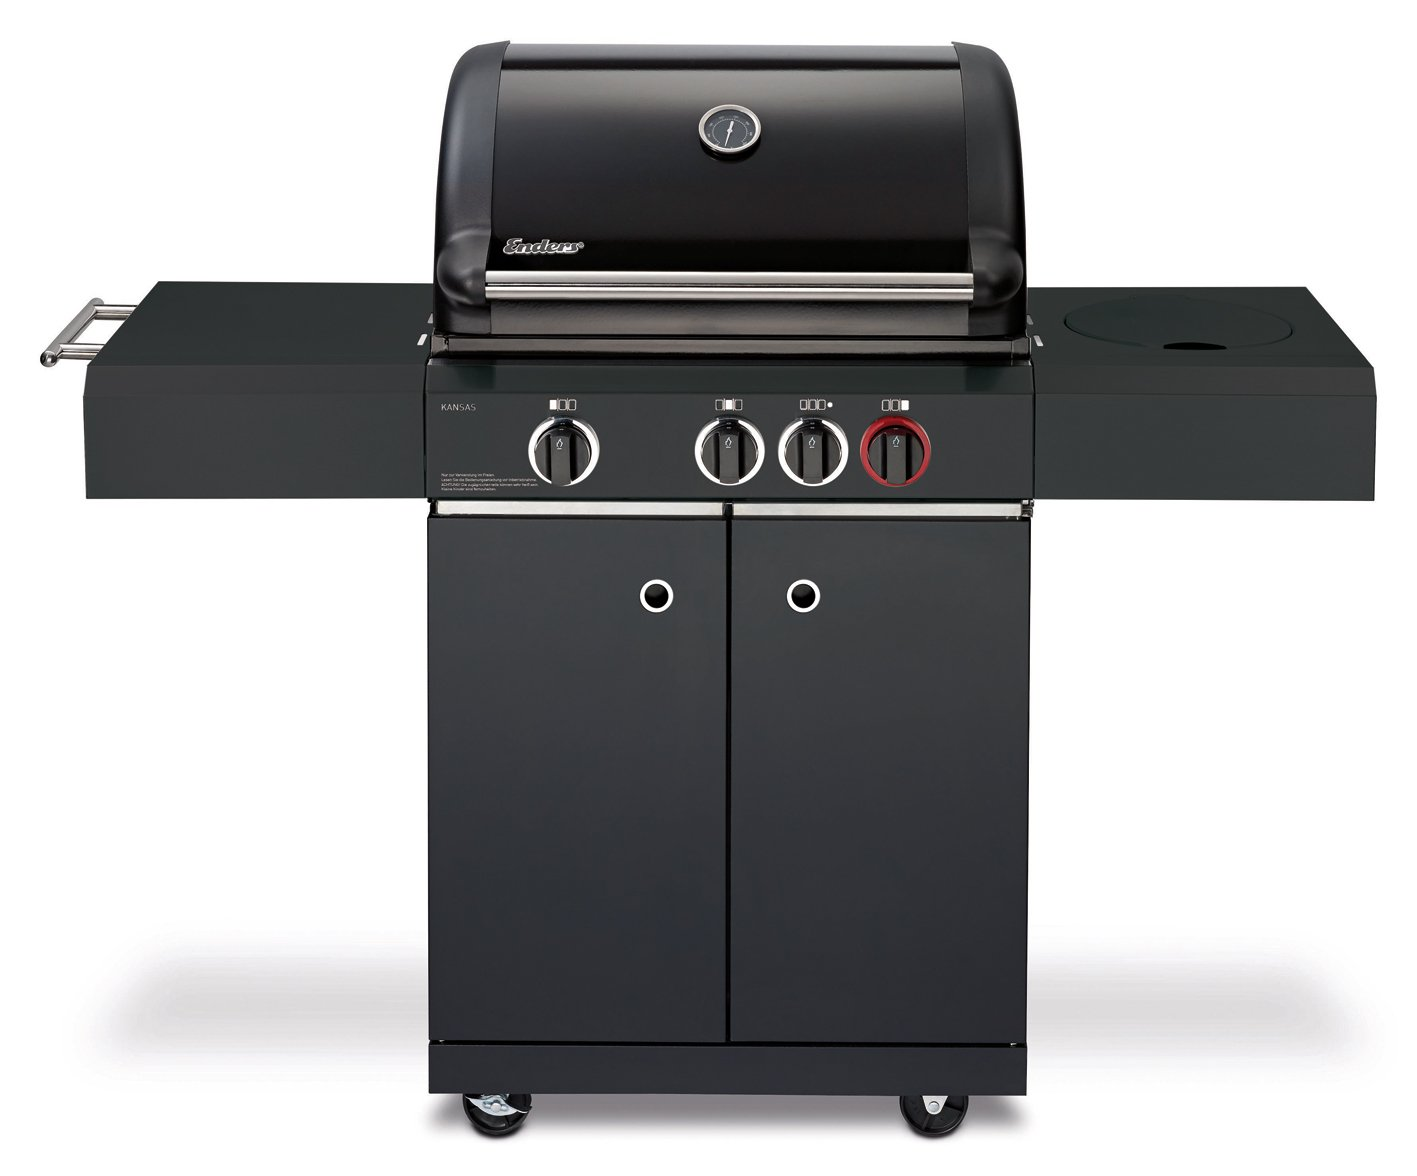 Enders Gasgrill Boston Black 4 Ik Zubehör : Enders gasgrill kansas black k turbo amazon garten